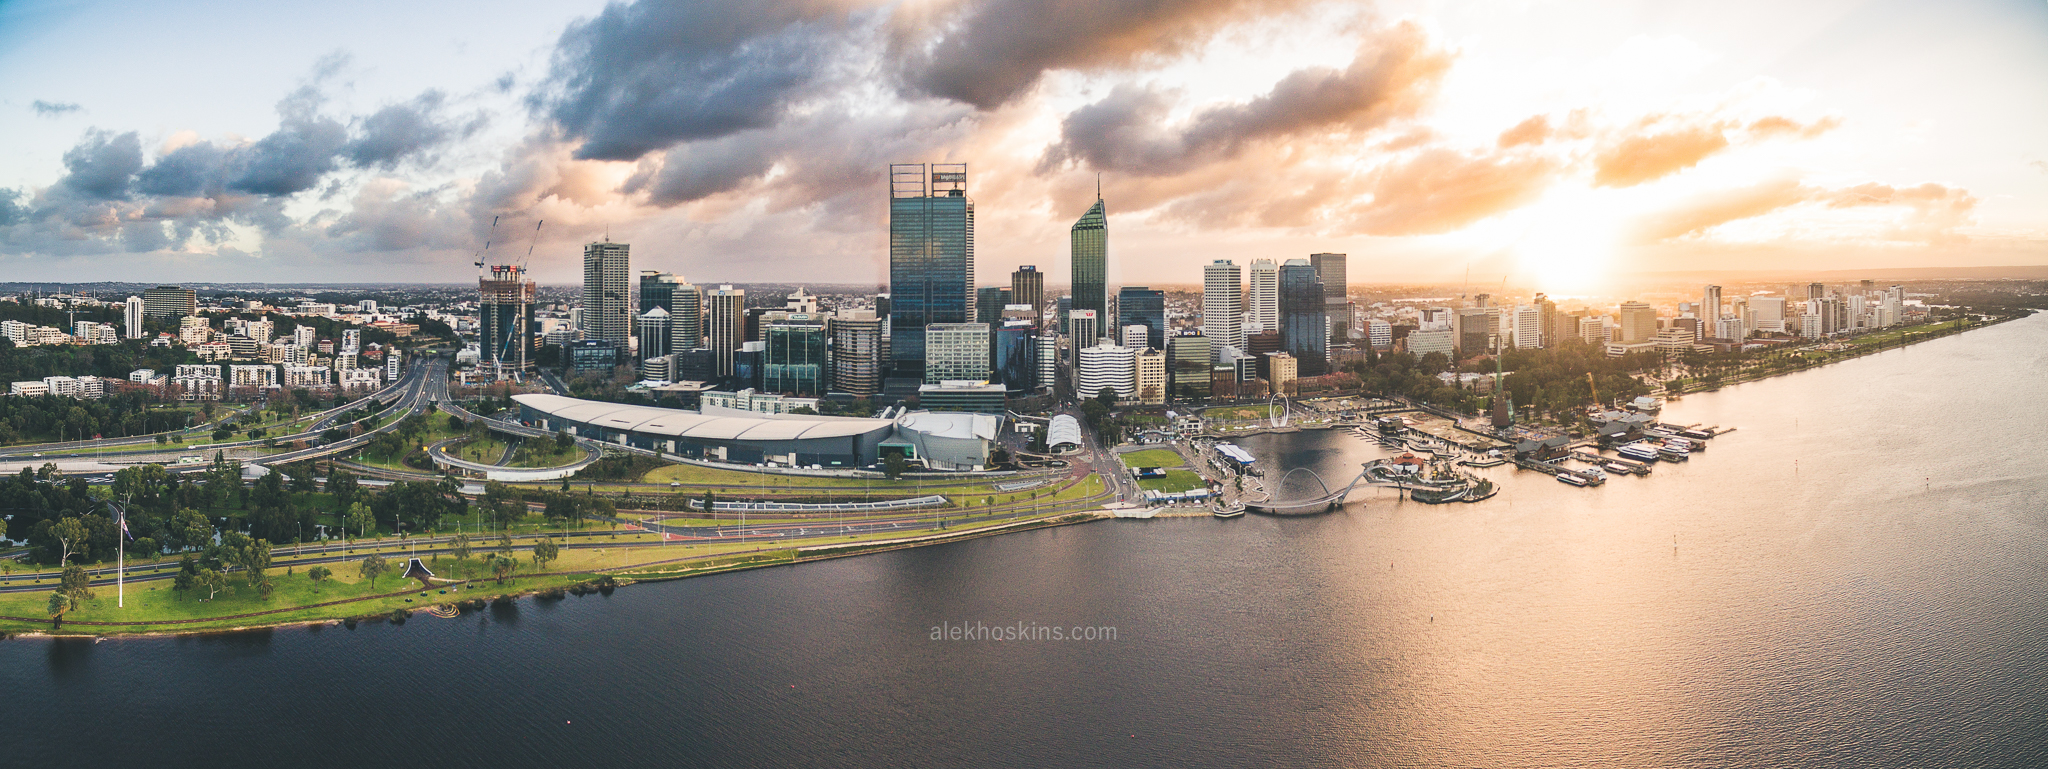 perth city drone (1 of 1)-2.jpg